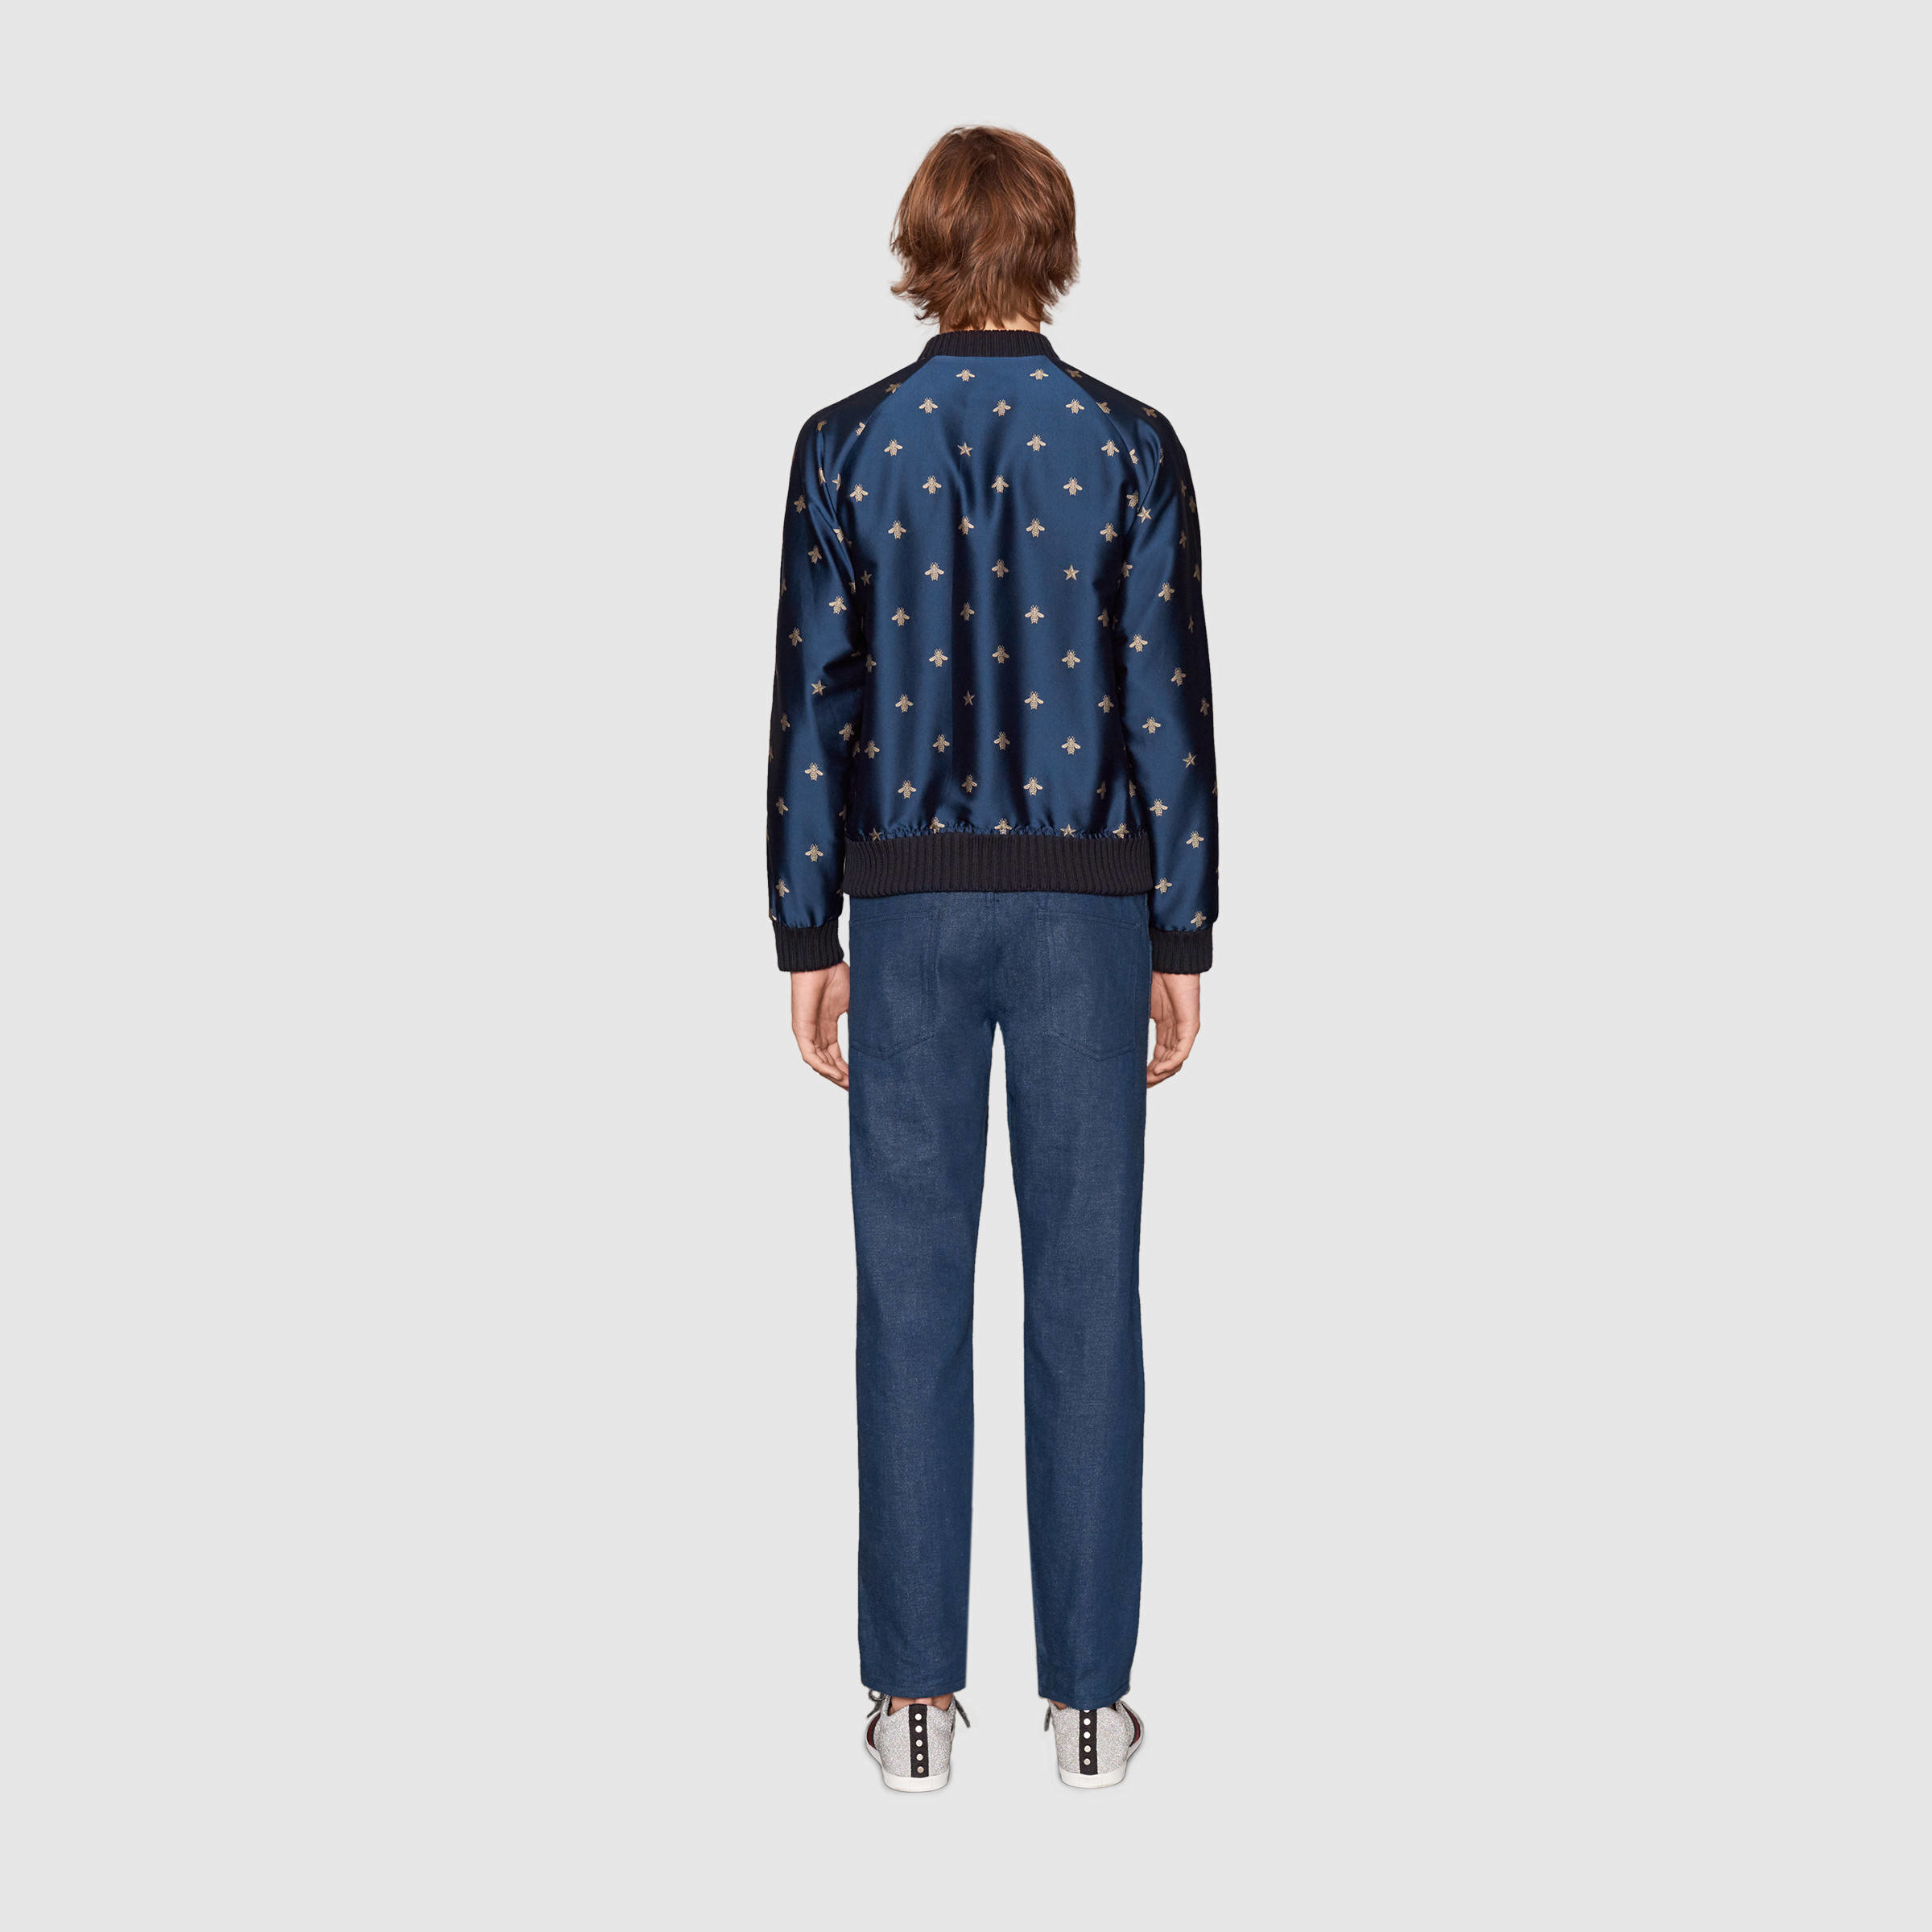 1b1db02c5 Gucci Bee Jacquard Bomber Jacket in Blue for Men - Lyst